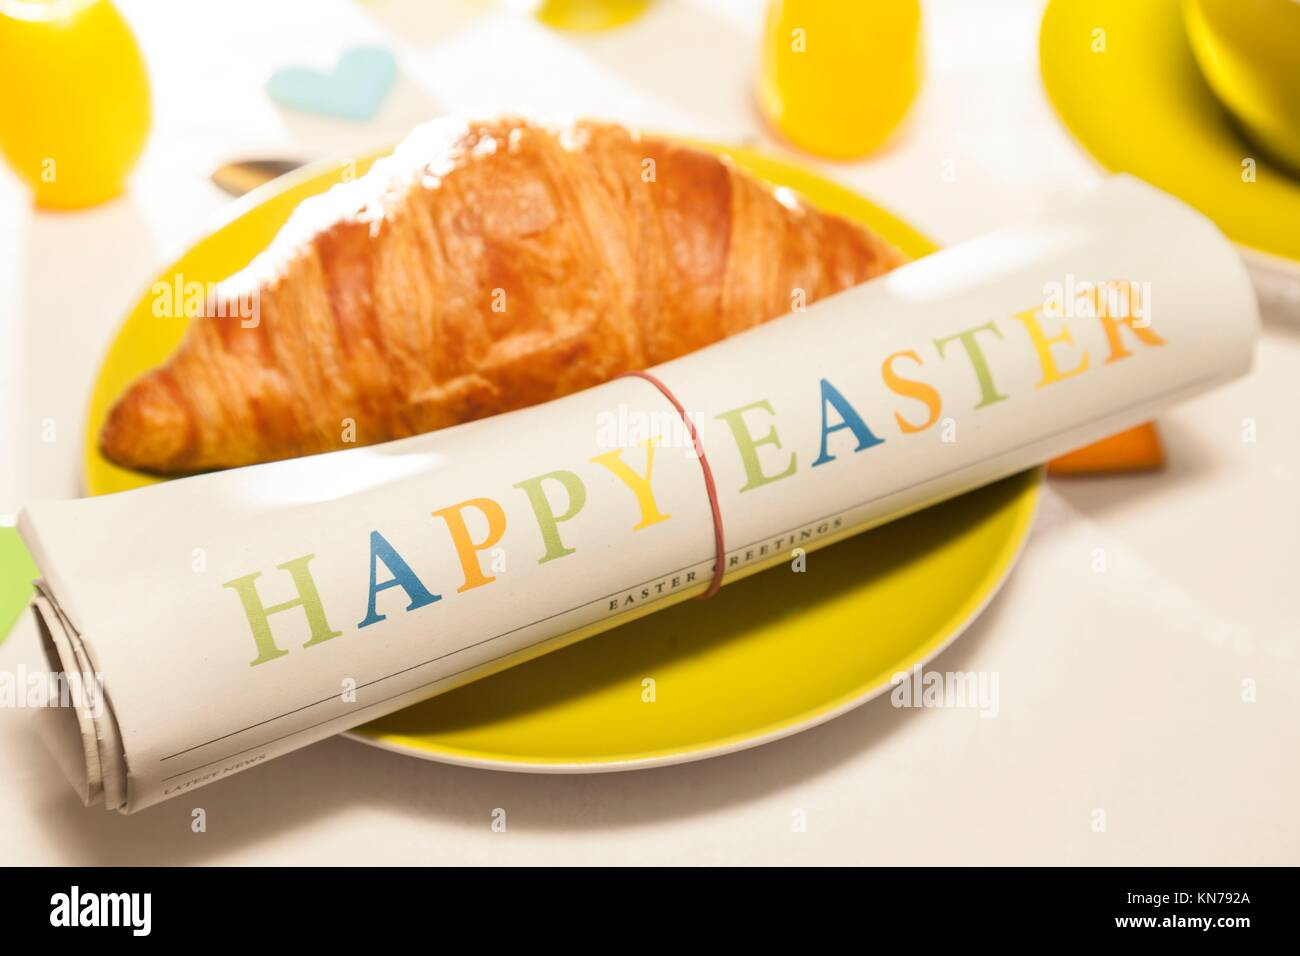 Happy Easter newspaper. - Stock Image